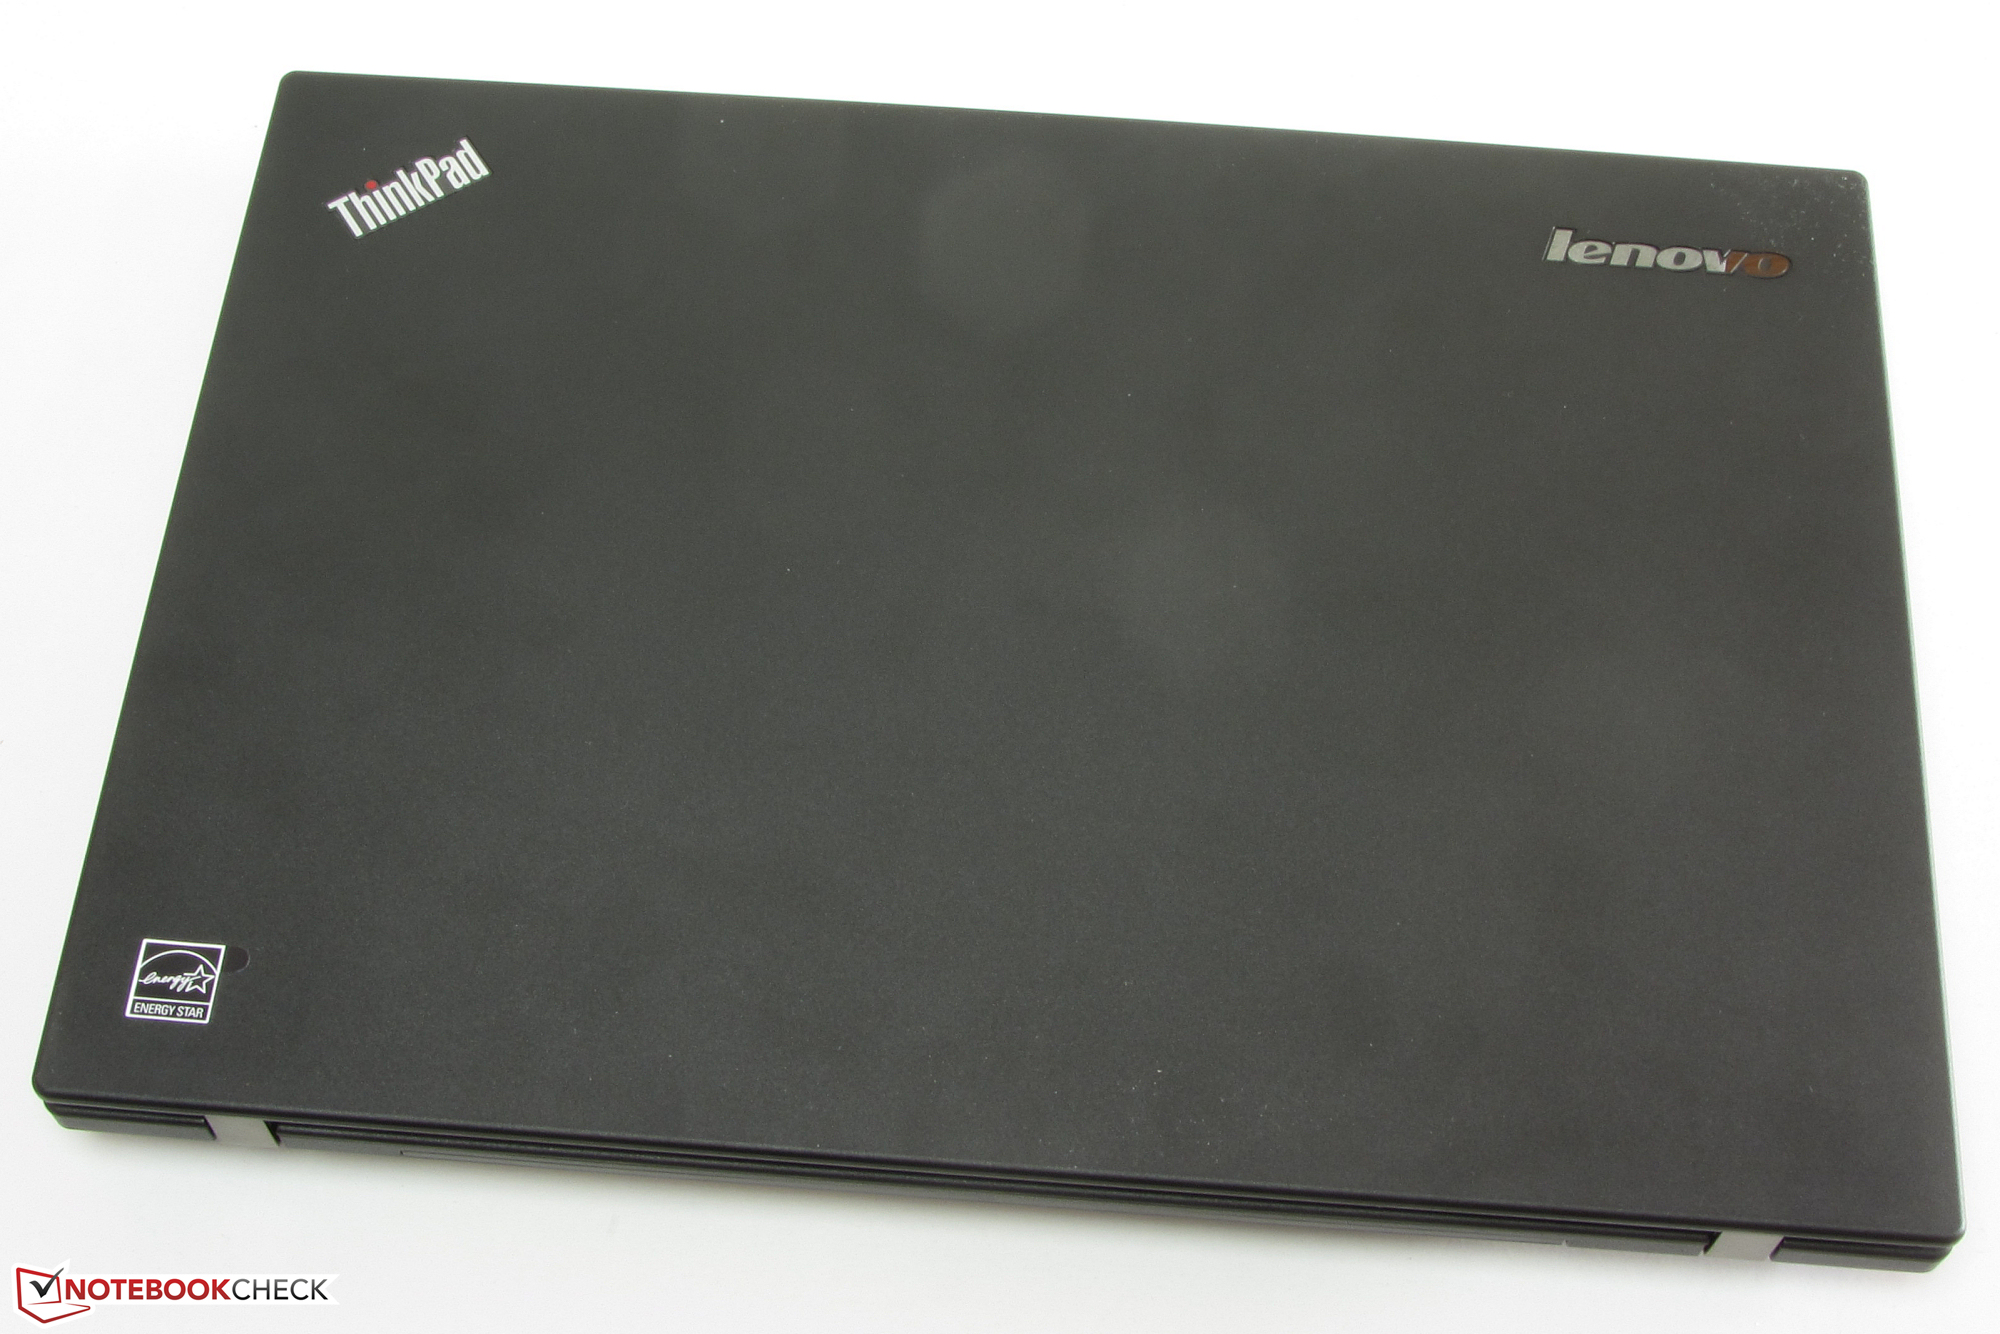 Lenovo ThinkPad L440 Realtek Card Reader Drivers for Windows